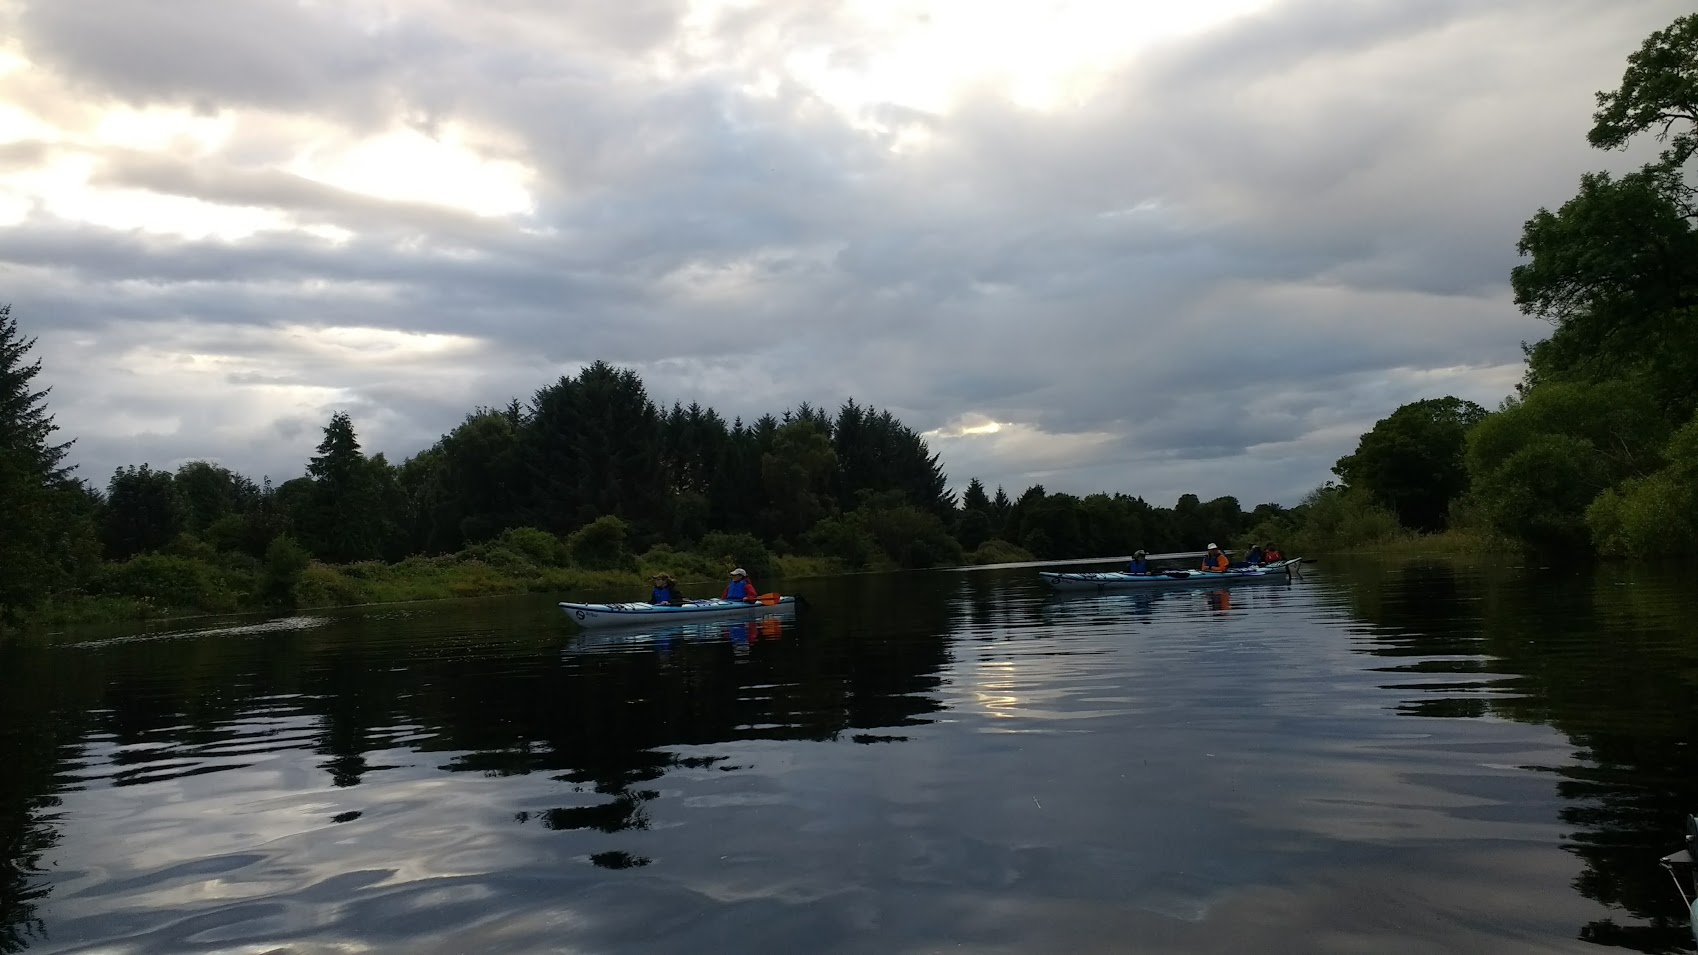 River Tay and Kayakers